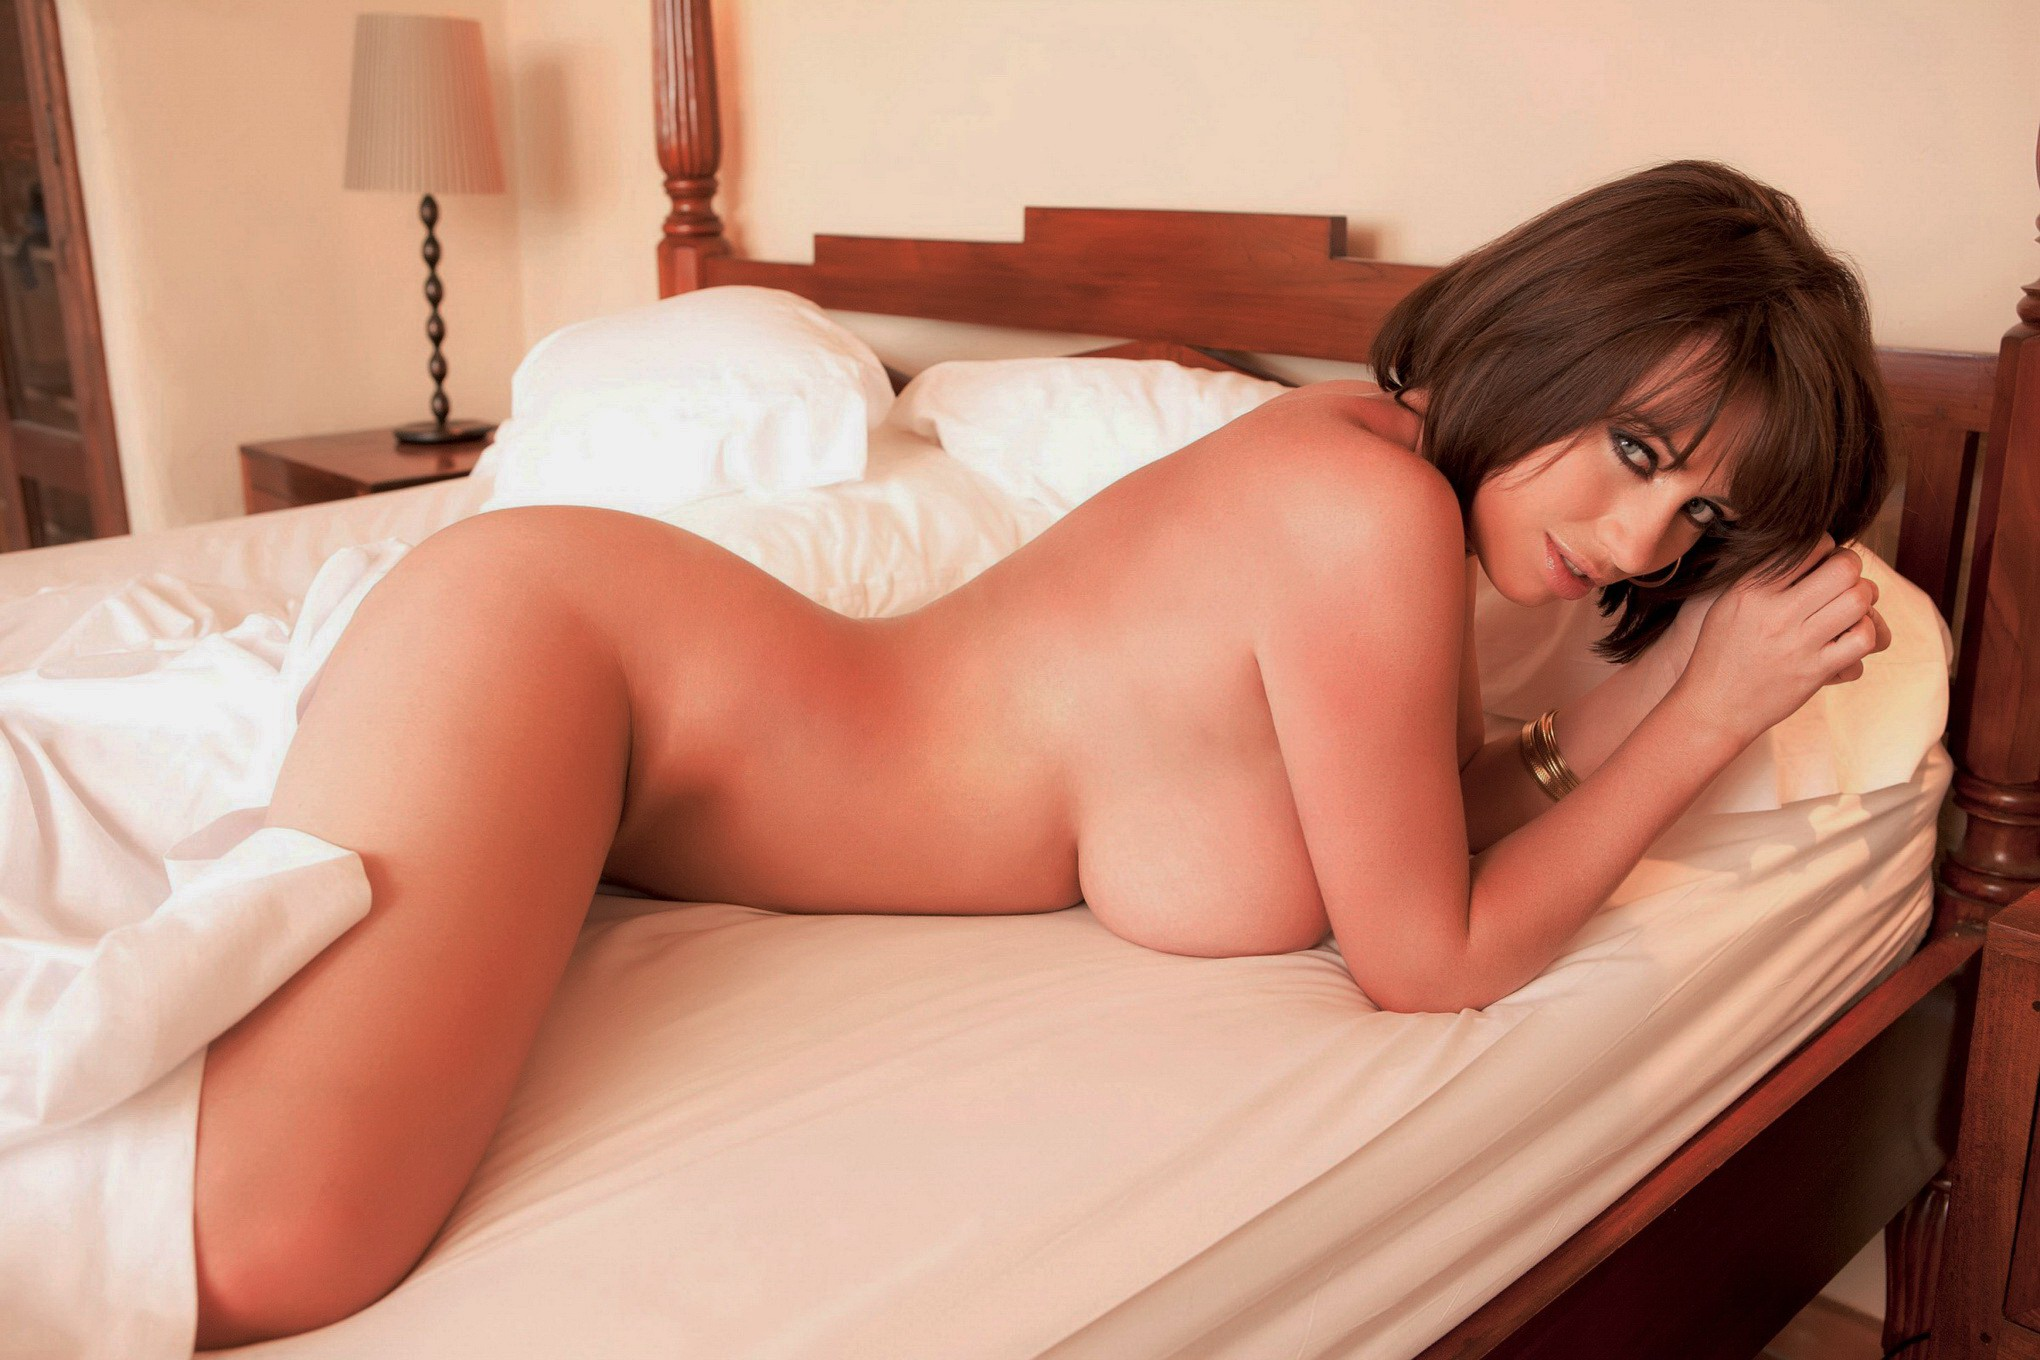 Lisa howard naked